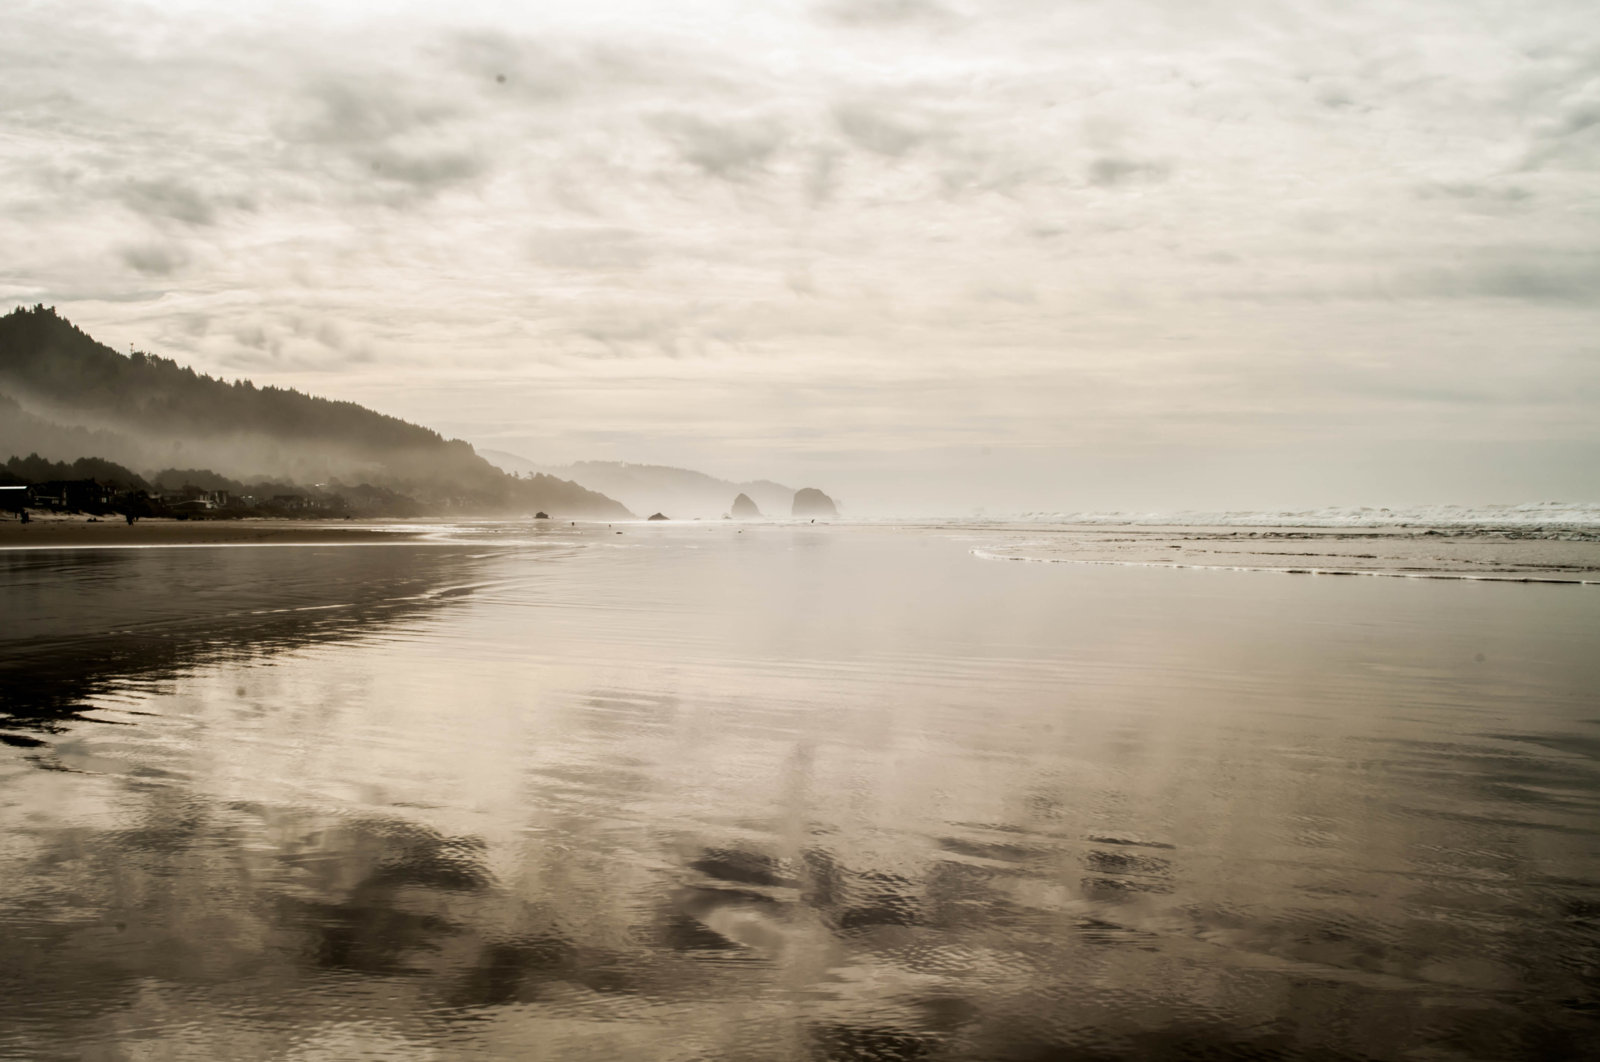 cannon-beach-or-1-jpg.30974_The New American Dream: Vagabond imagery and tales from the road._Travel Stories_Squat the Planet_1:12 PM